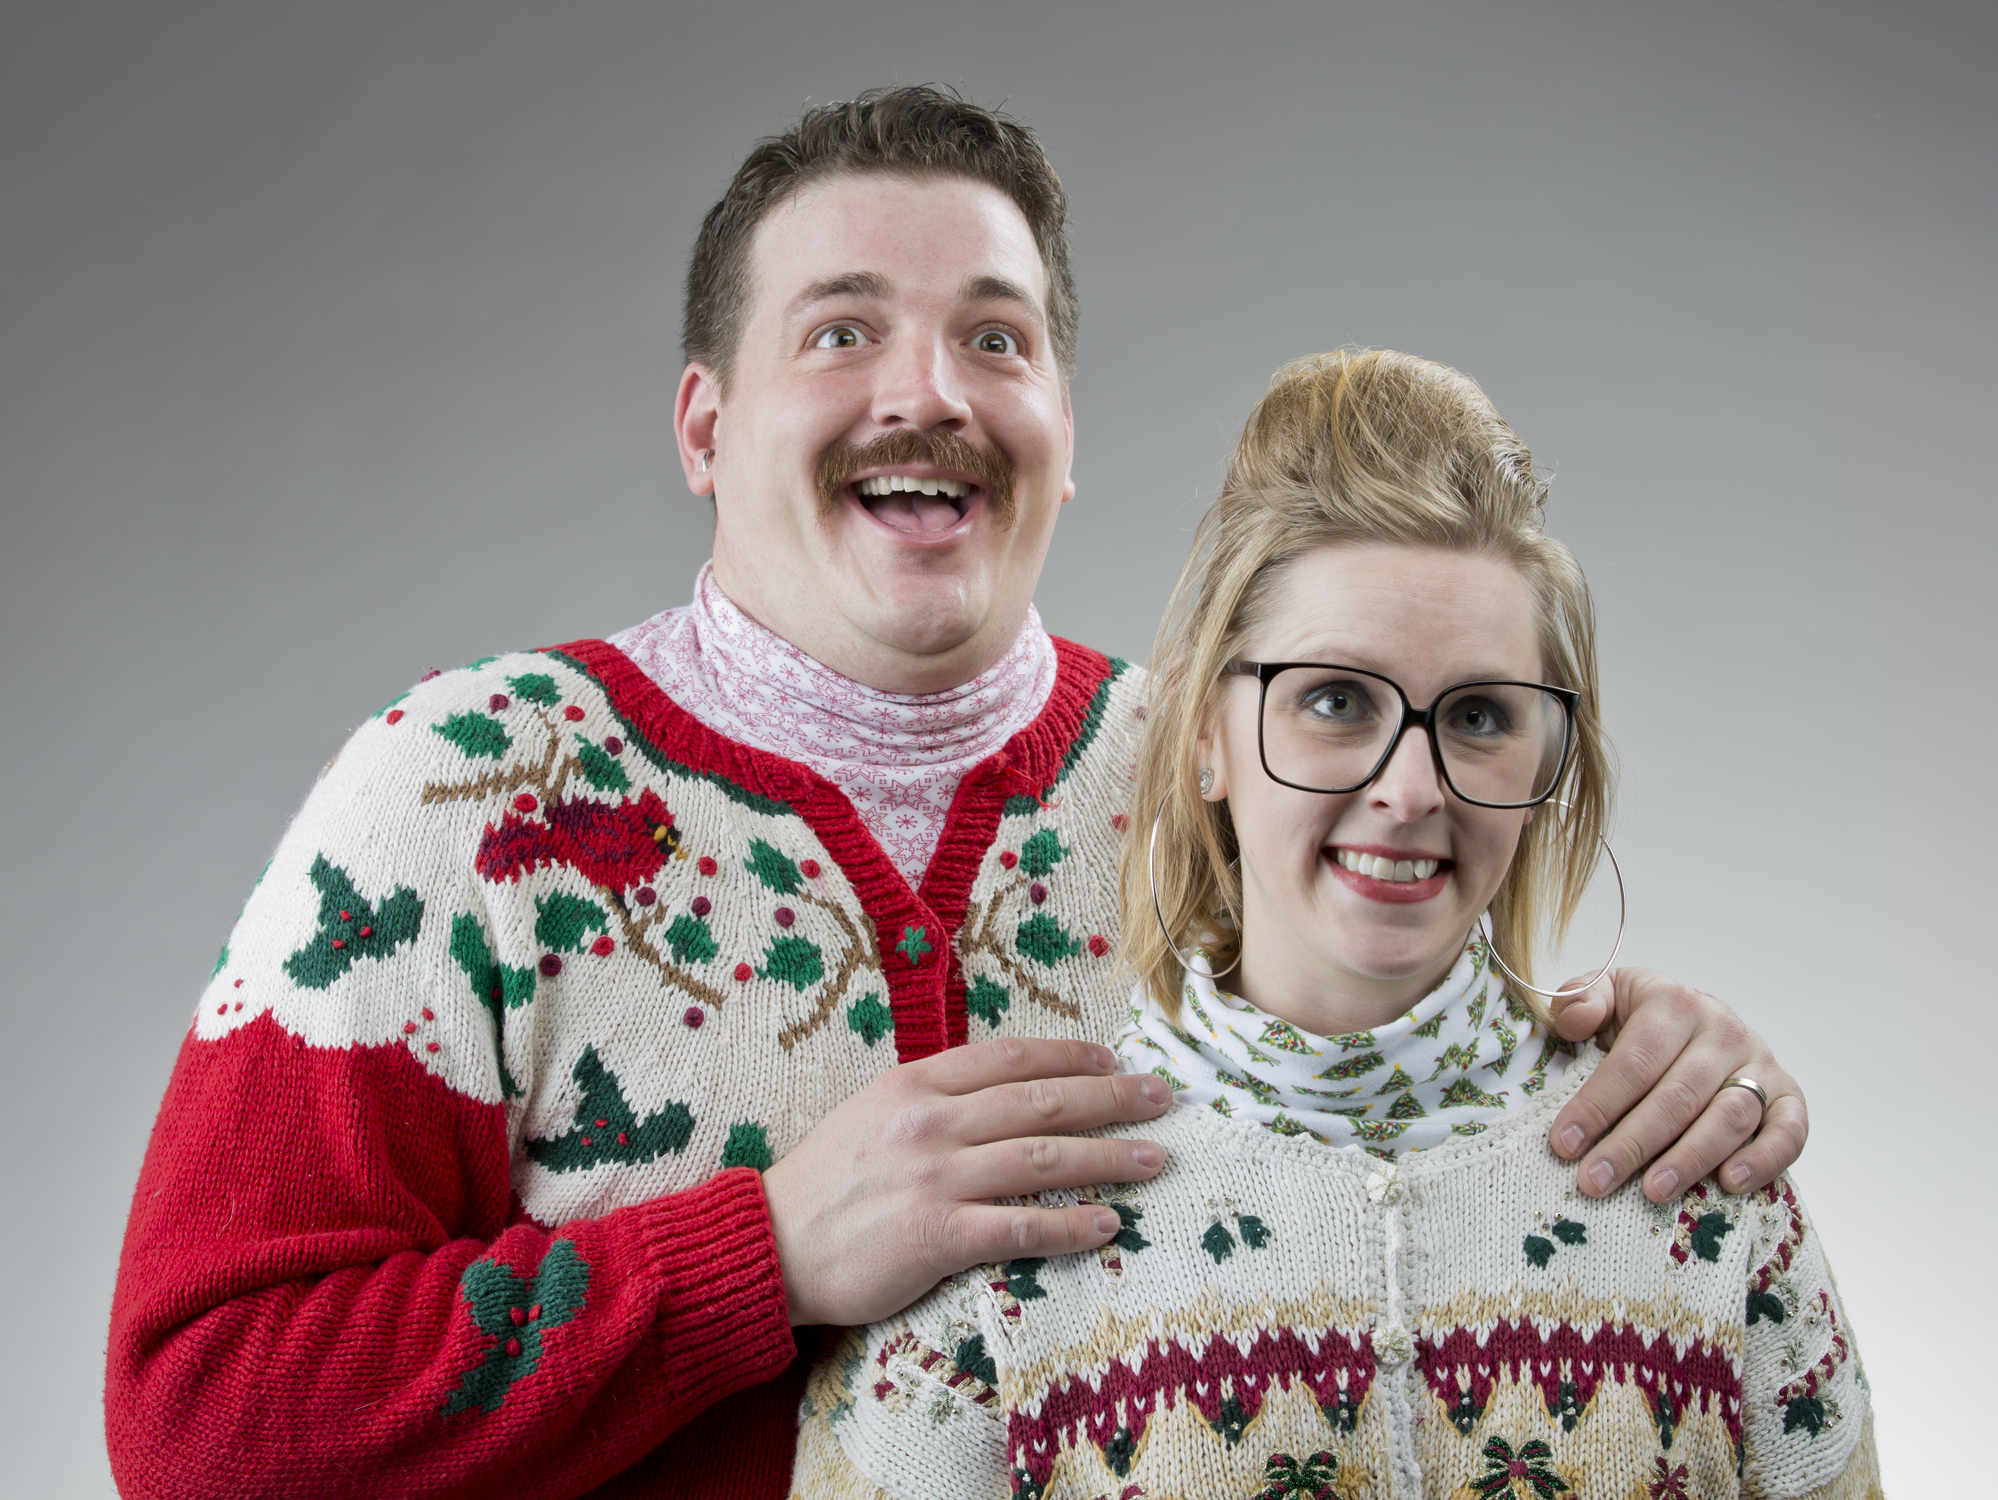 Awkward photo of couple in Christmas sweaters